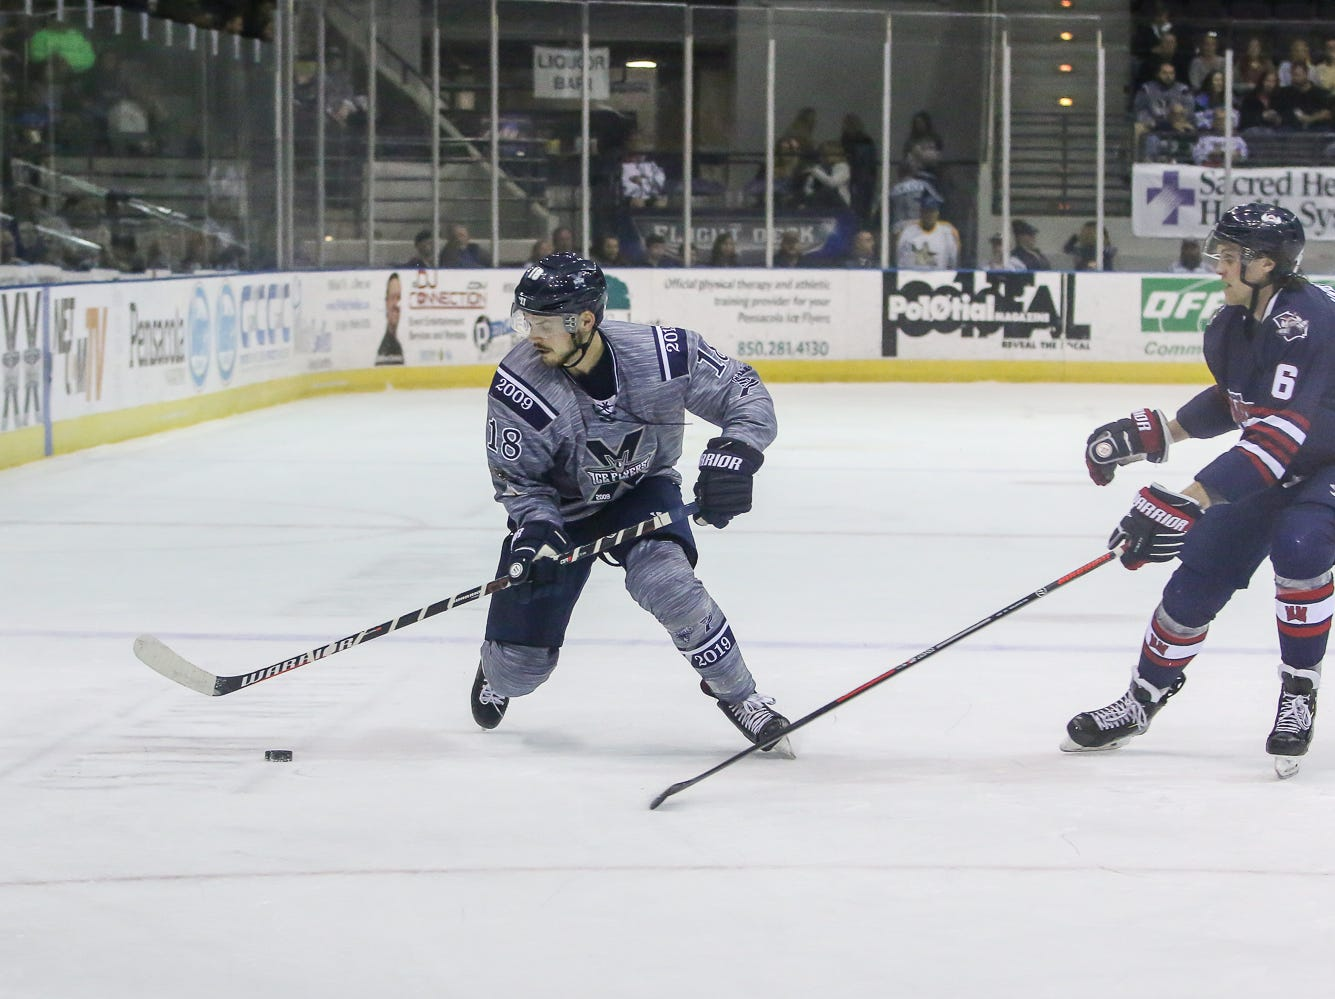 Pensacola's Andrew Schmit (18) makes a quick move to keep Macon's Zach Urban (6) from the puck during the last home game of the regular season at the Pensacola Bay Center on Saturday, March 23, 2019. With over 4,300 people in attendance for Pensacola's 3-1 victory, the Ice Flyers mark six straight years of over 100,000 people at their home games each season. The team has won their last five games in a row and will finish out their last five games on the road before entering the playoffs in a couple of weeks.